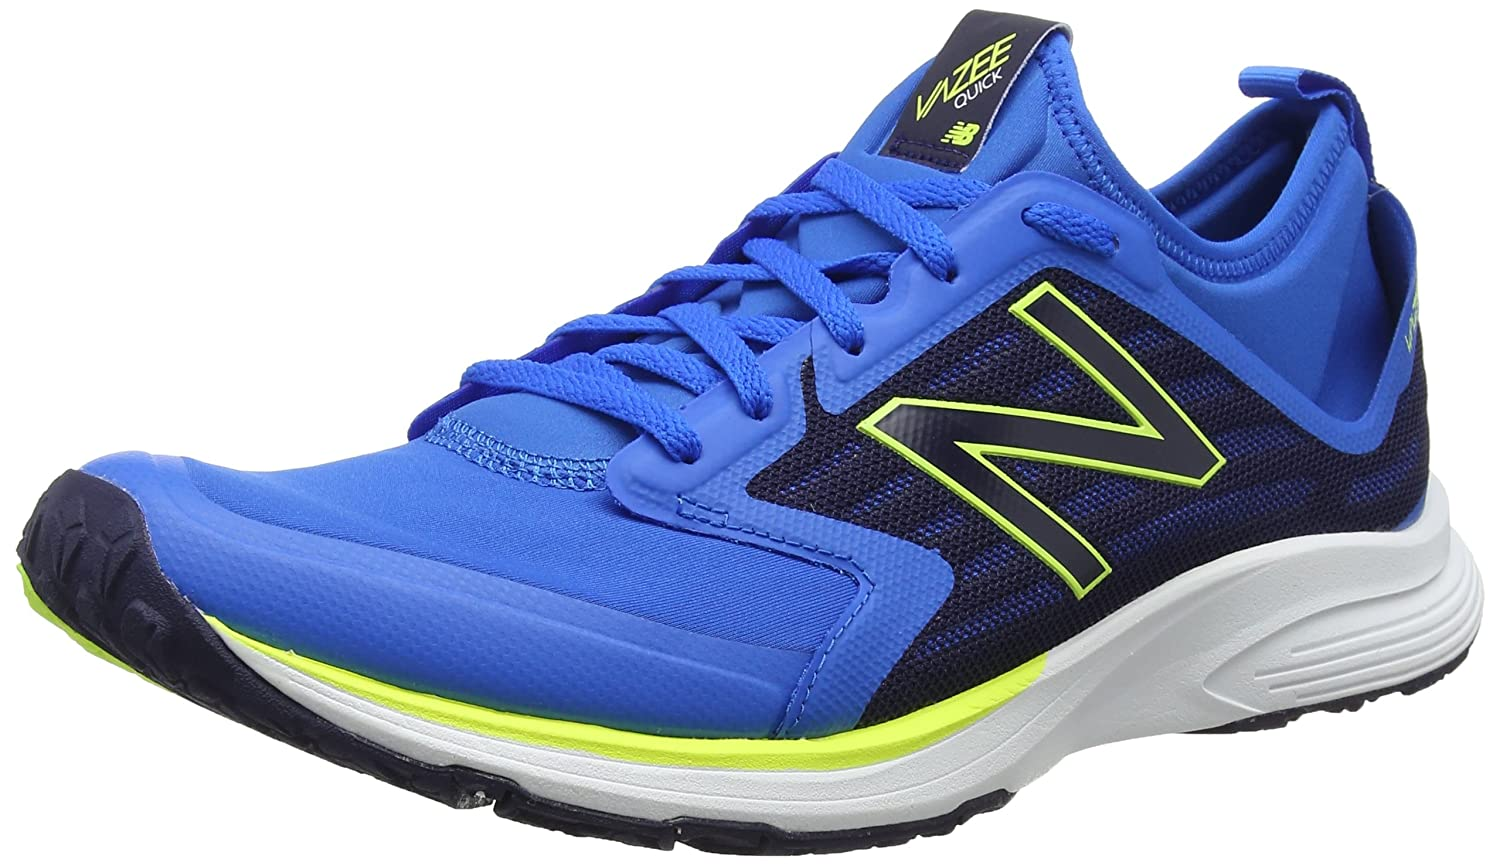 New Balance Men's Vazee Qik Cross Trainer B01FSD8BNG 9.5 D(M) US|Electric Blue/Dark Denim